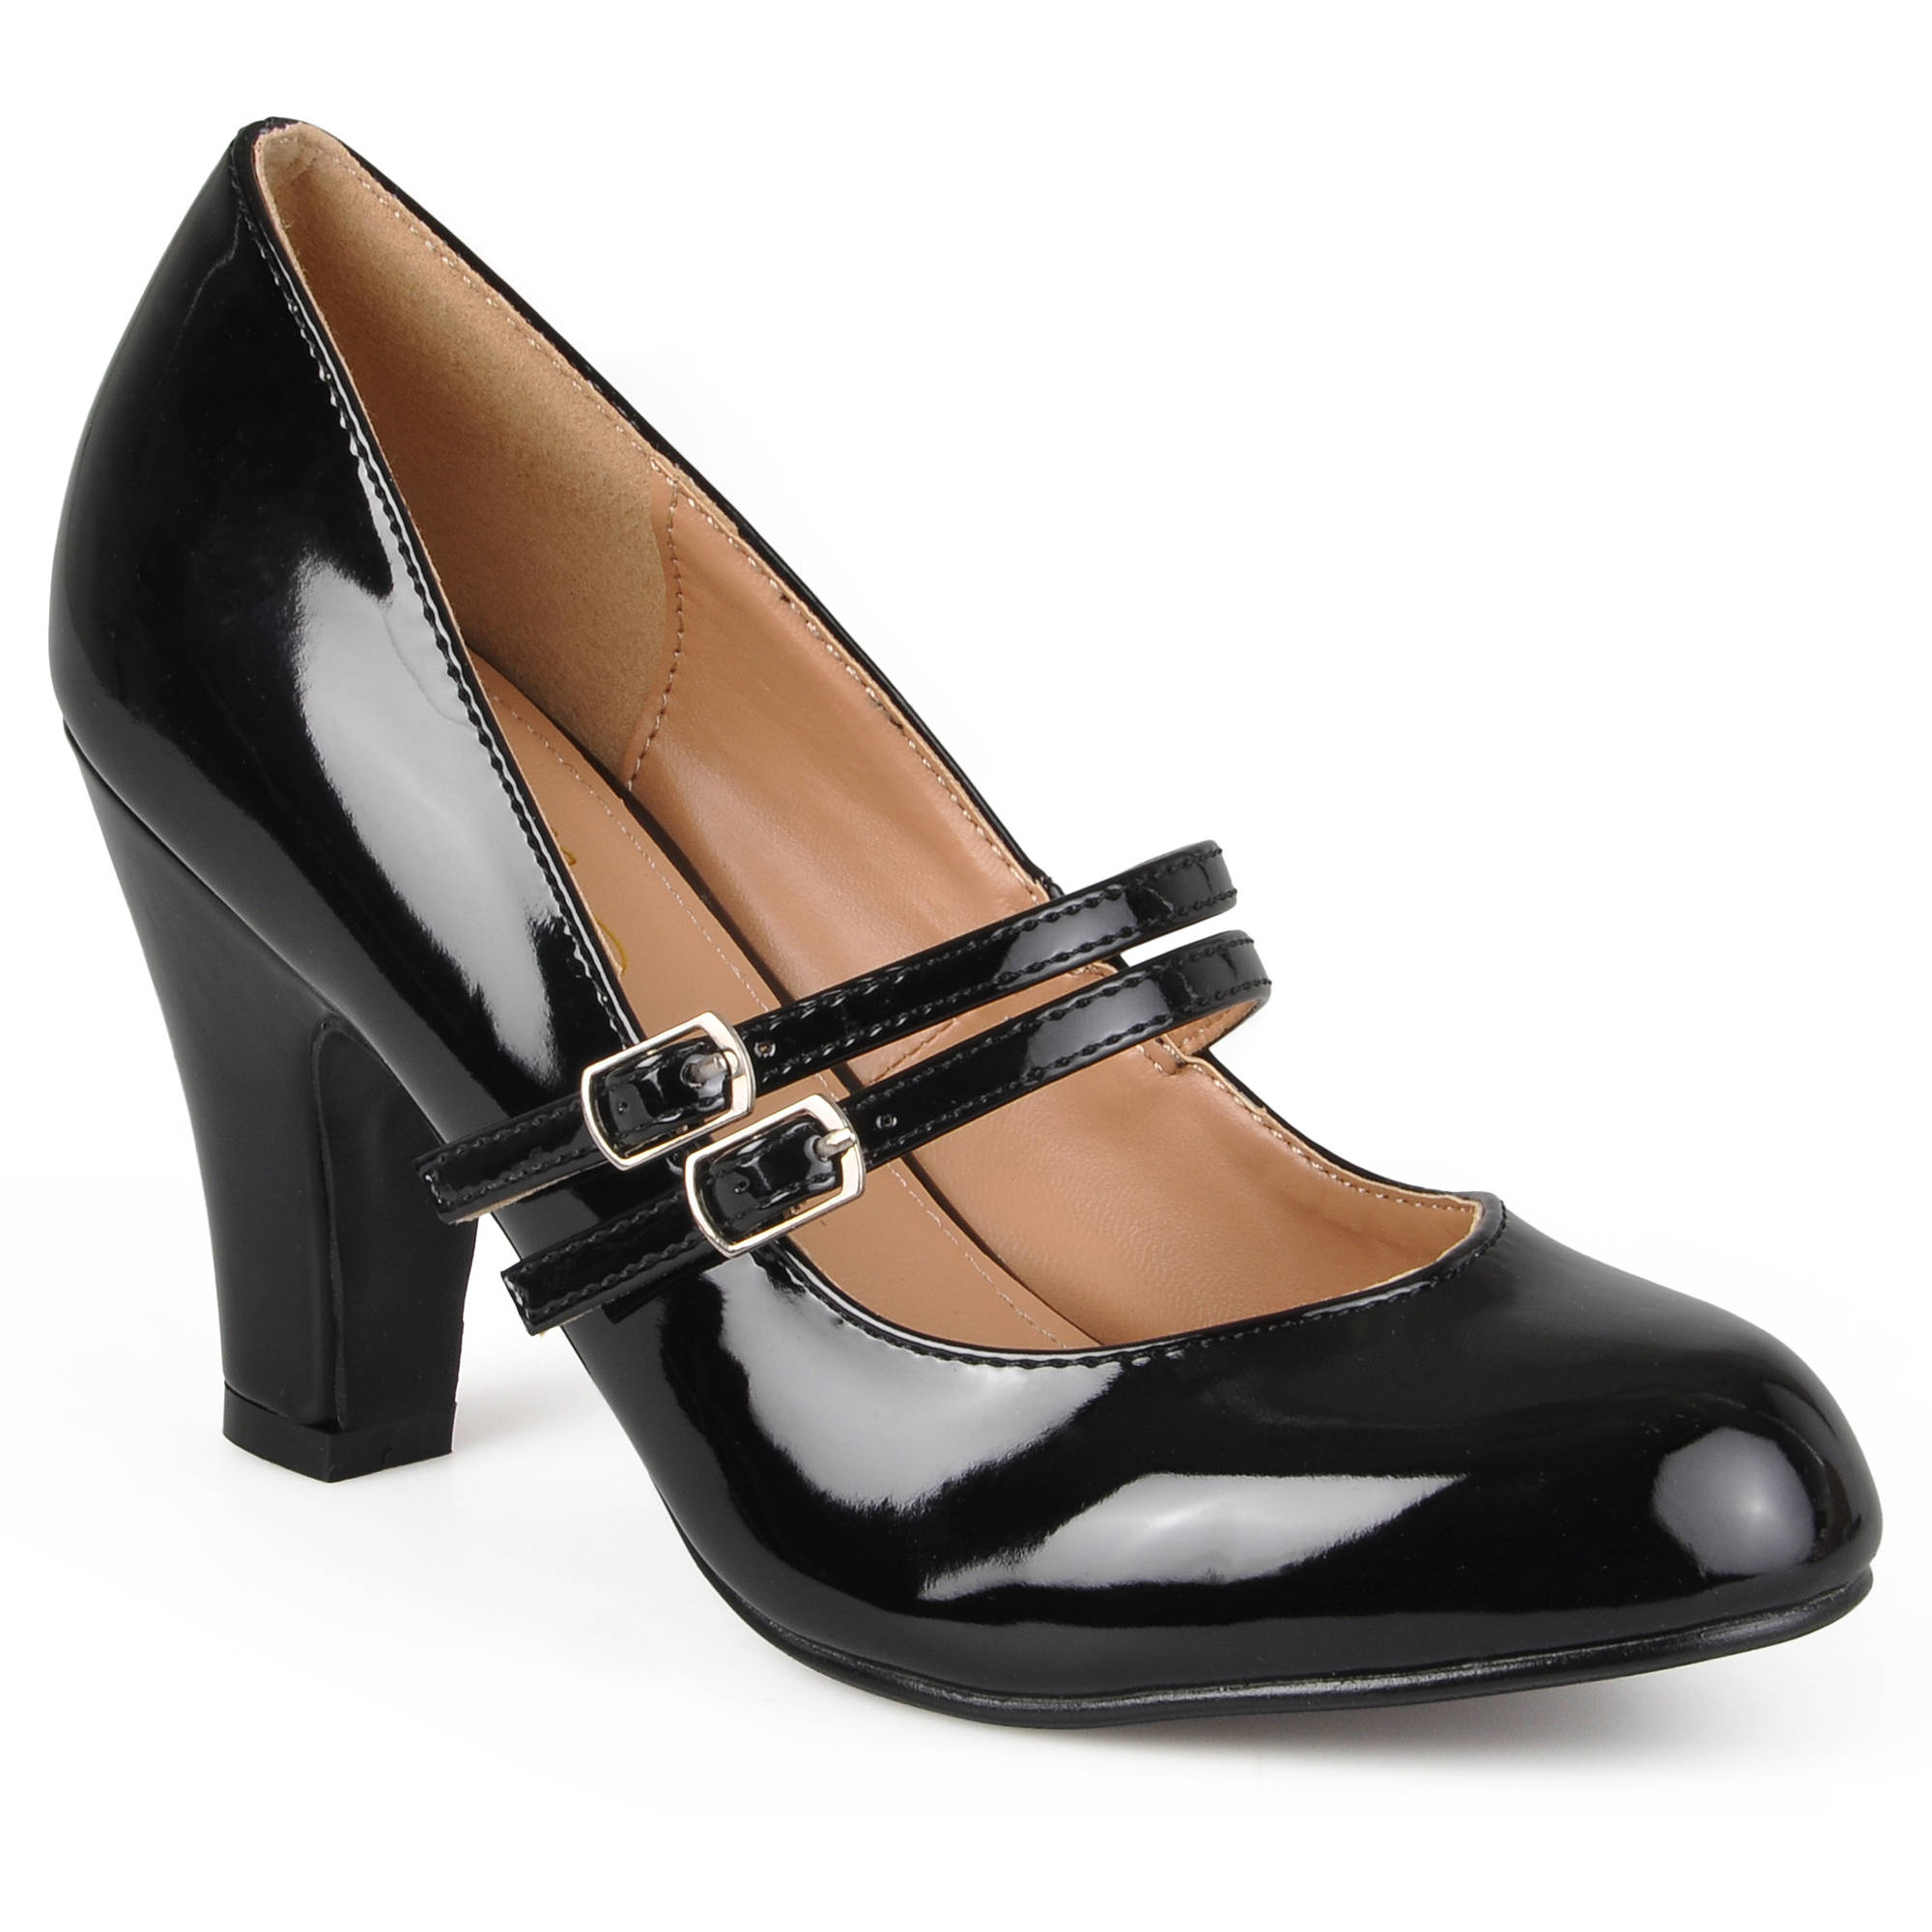 Brinley Co. Womens Wide Width Mary Jane Patent Leather Pumps